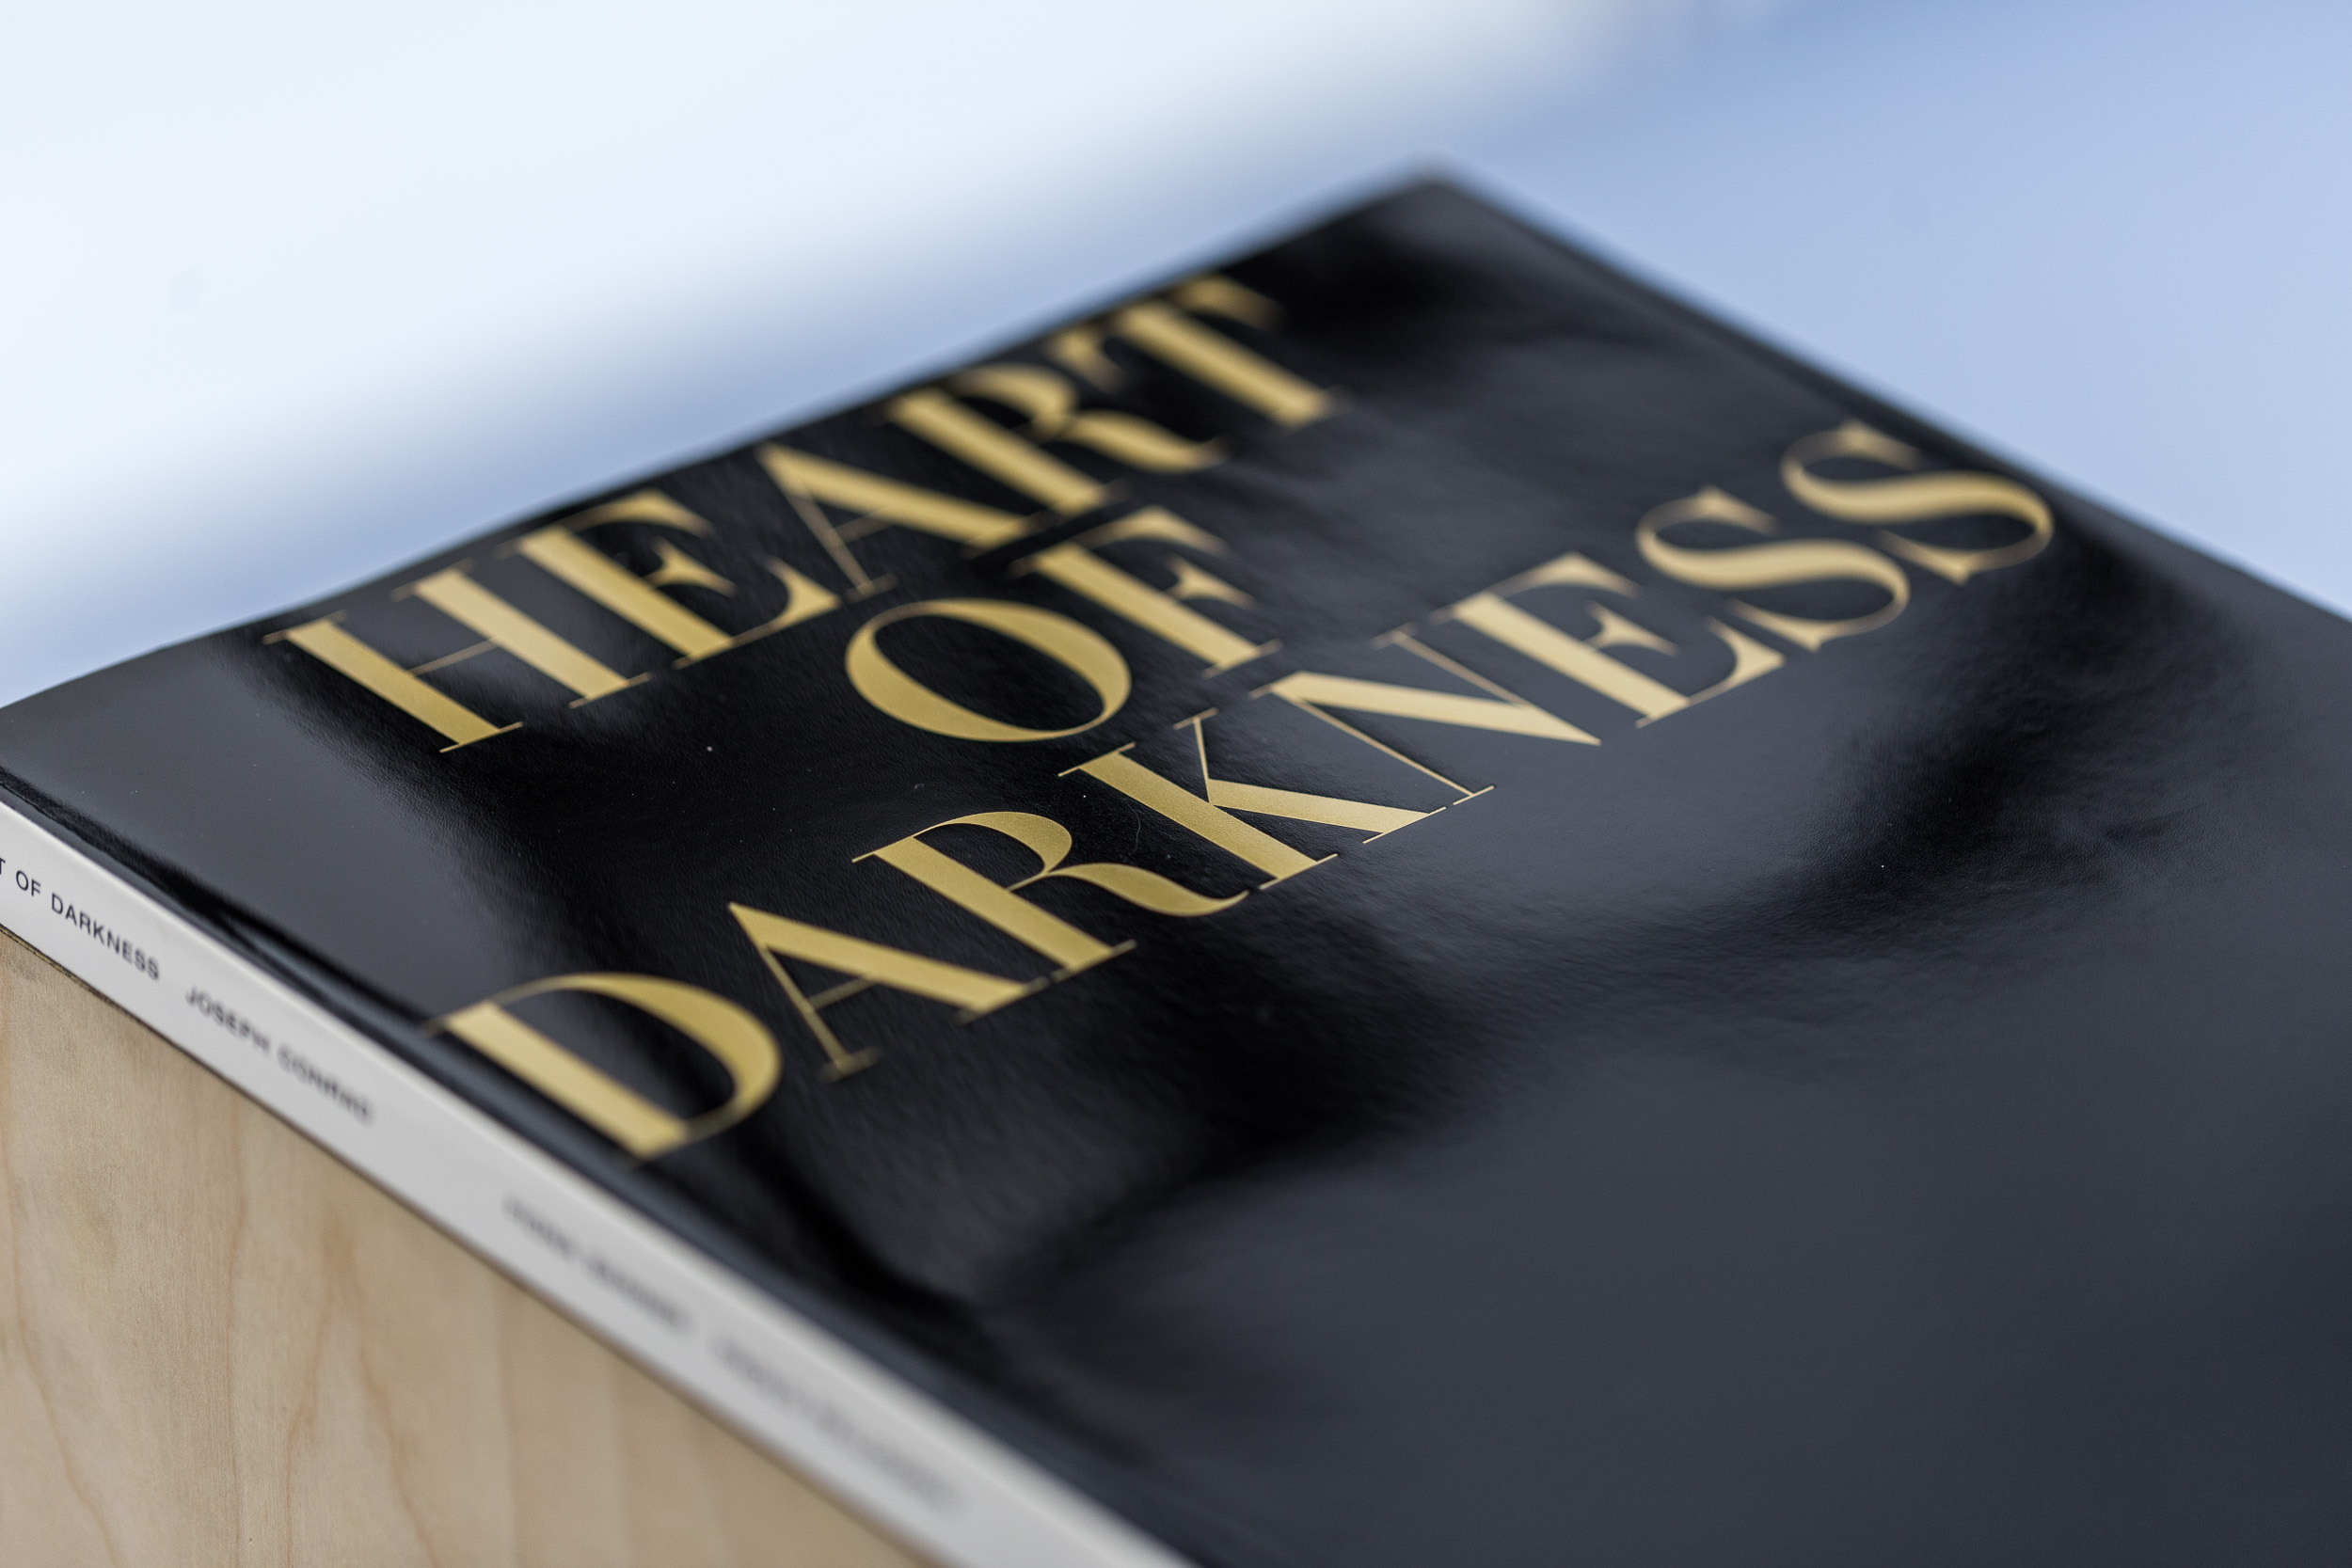 Fiona Banner,  Heart of Darkness , 2015, 320 page magazine on plinth. Words by Joseph Conrad. Photographs by Paolo Pellegrin, commissioned by Fiona Banner in association with the Archive of Modern Conflict. Published by the Vanity Press and Four Corners Books  Photo: Kilian Bannwart